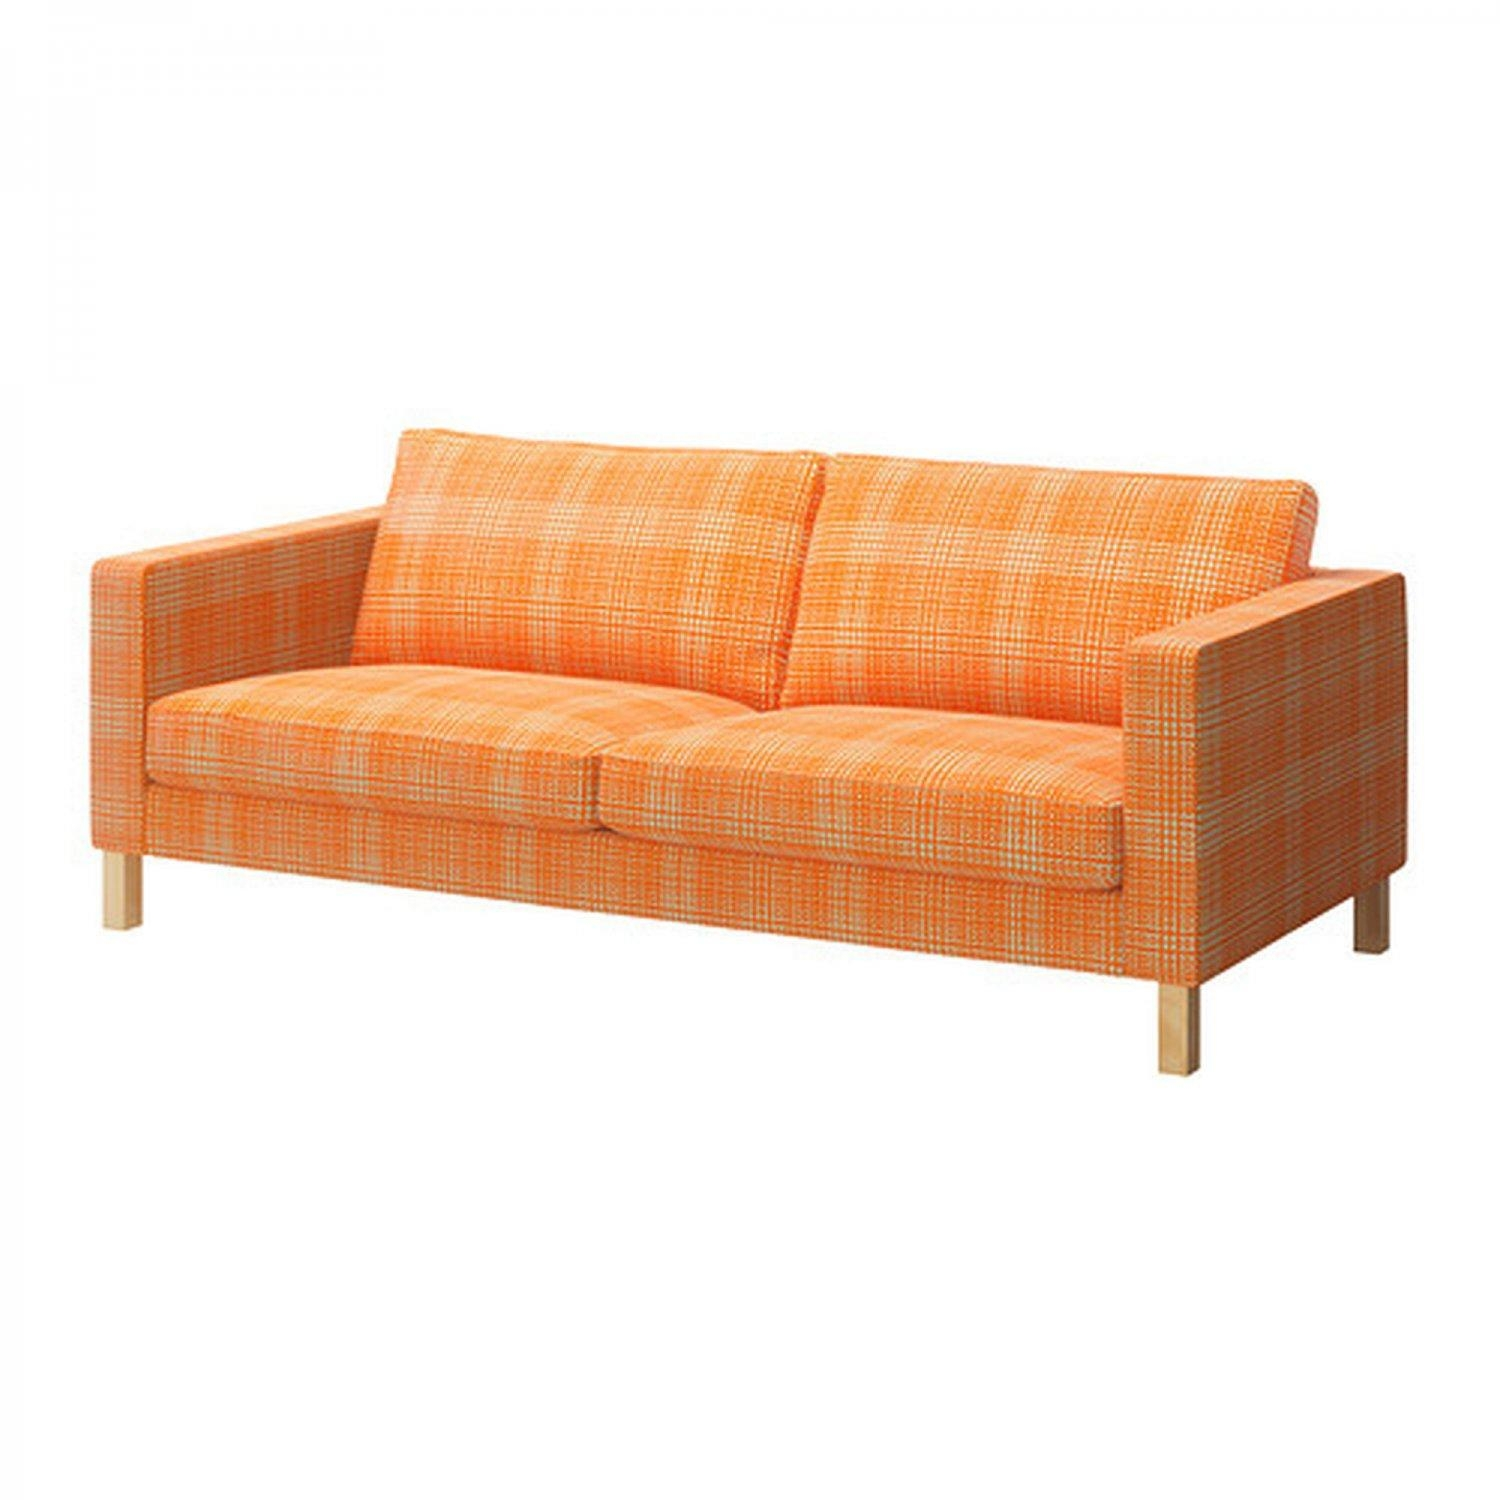 Ikea Karlstad Corner Sofa: 20 Best Orange Ikea Sofas